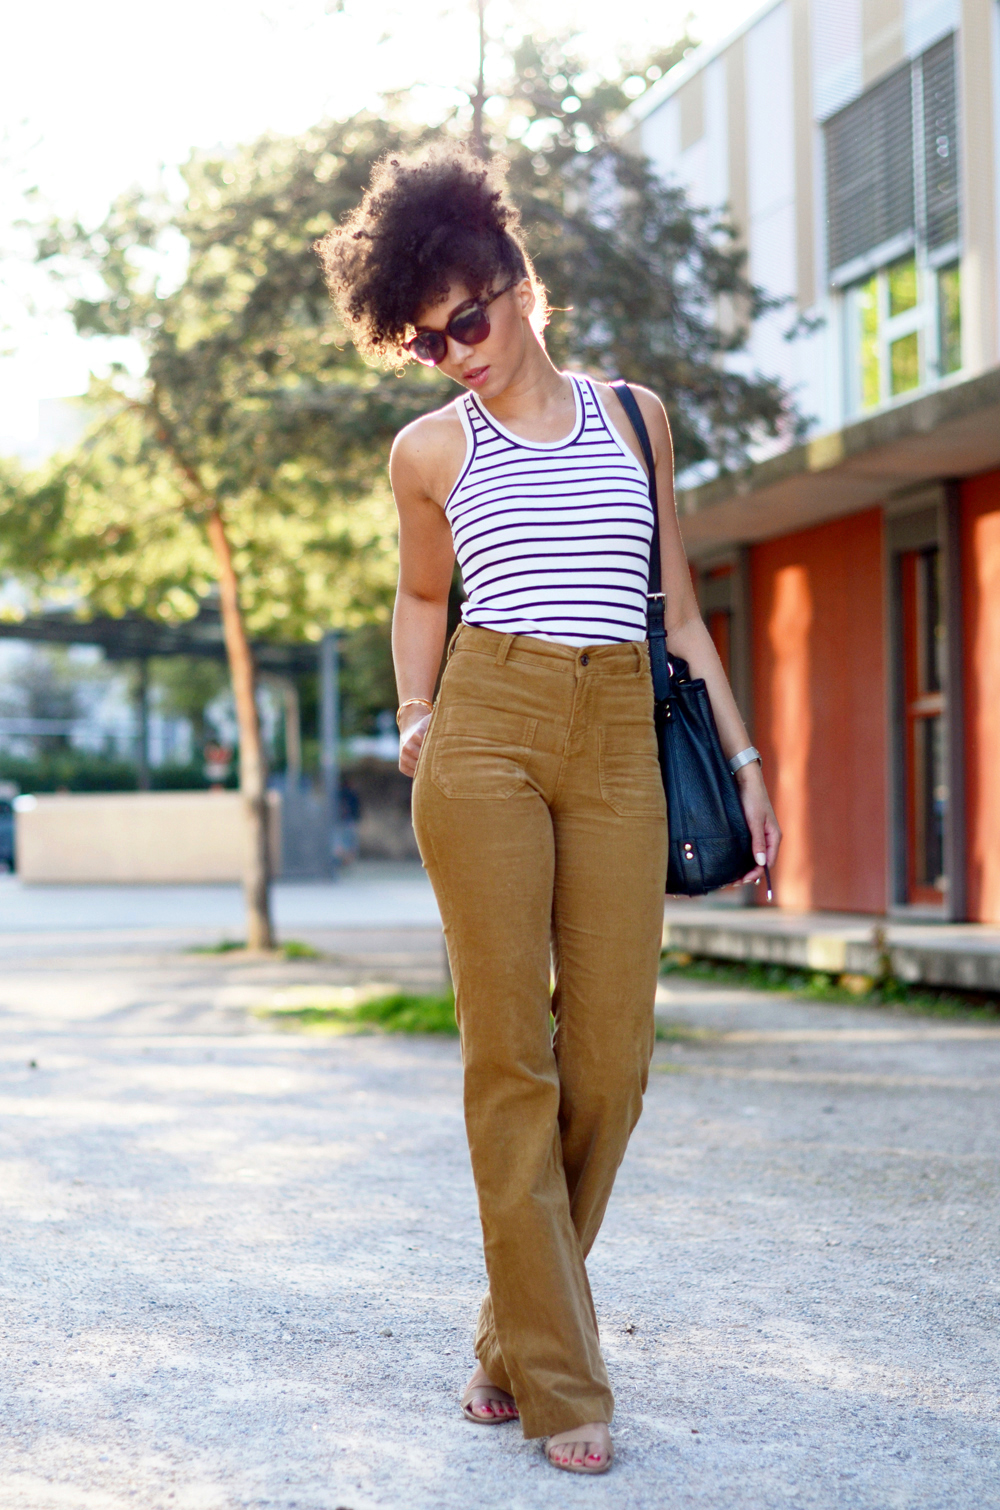 mercredie-blog-mode-geneve-suisse-blogueuse-bloggeuse-optic2000-lunettes-de-soleil-MAUI-JIM-natural-hair-frohawk-pantalon-vanessa-bruno-flare-Dompay3